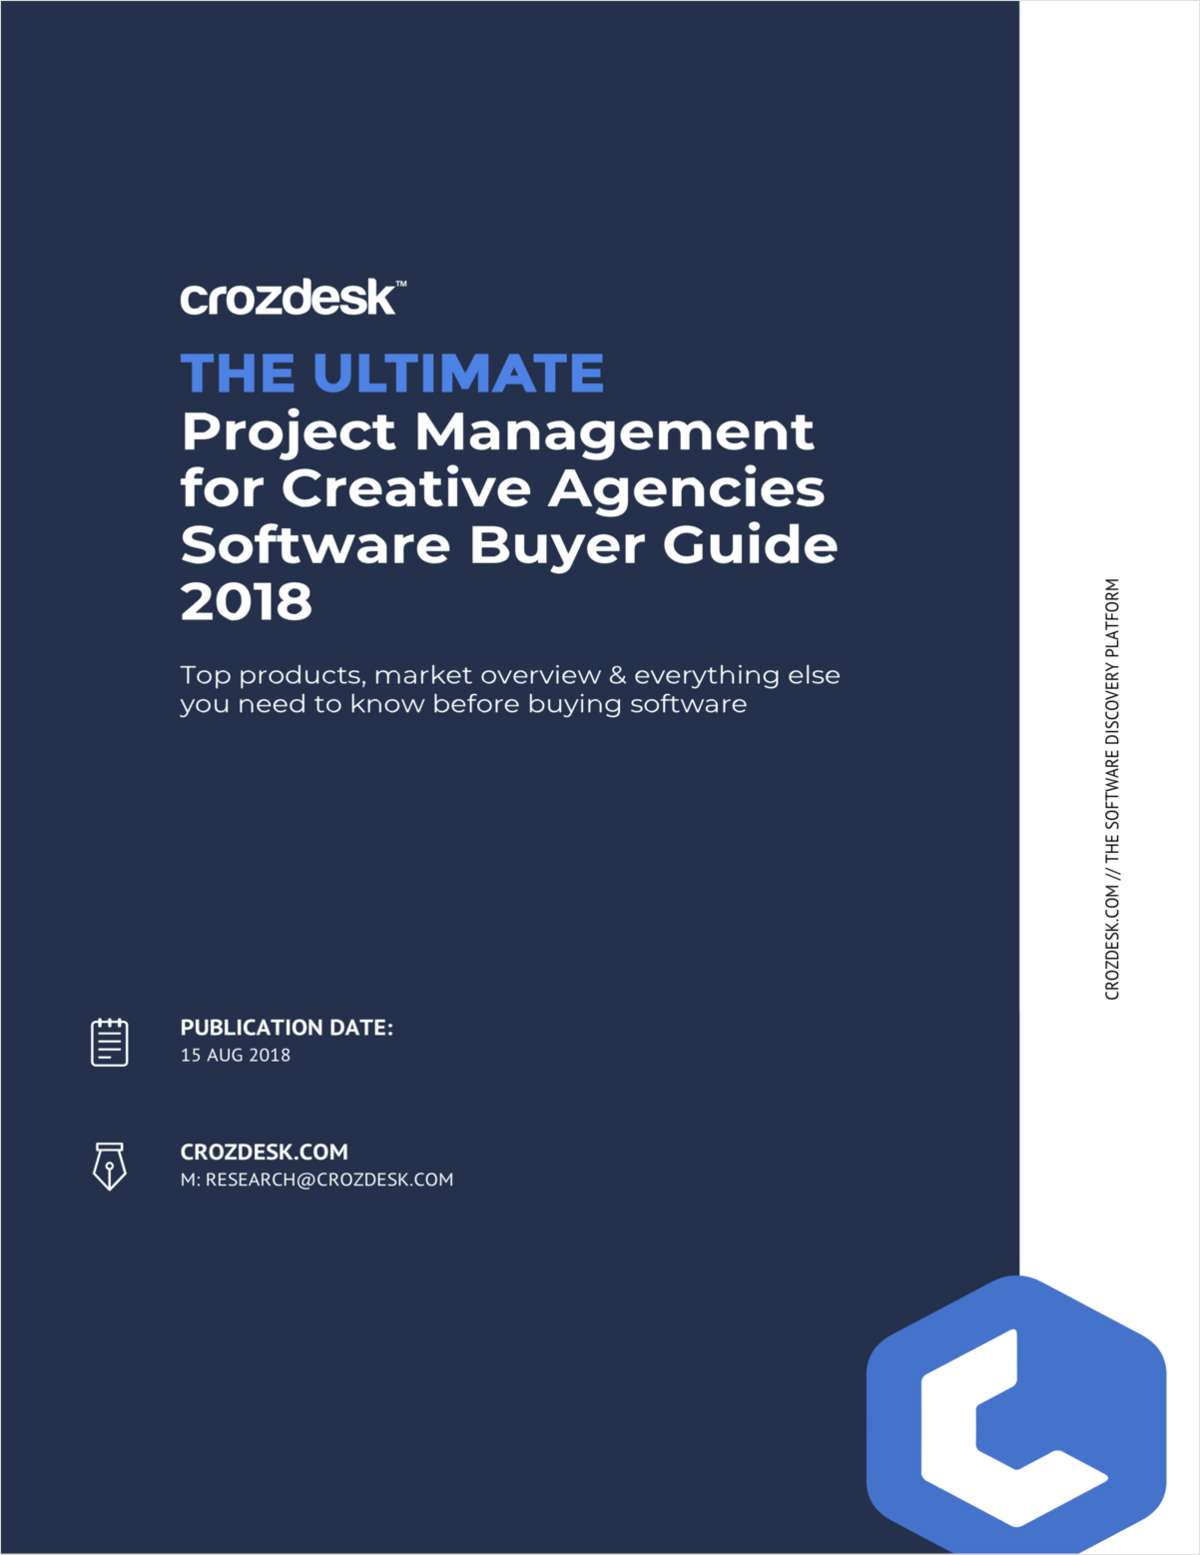 Project Management for Creative Agencies Buyer Guide 2018